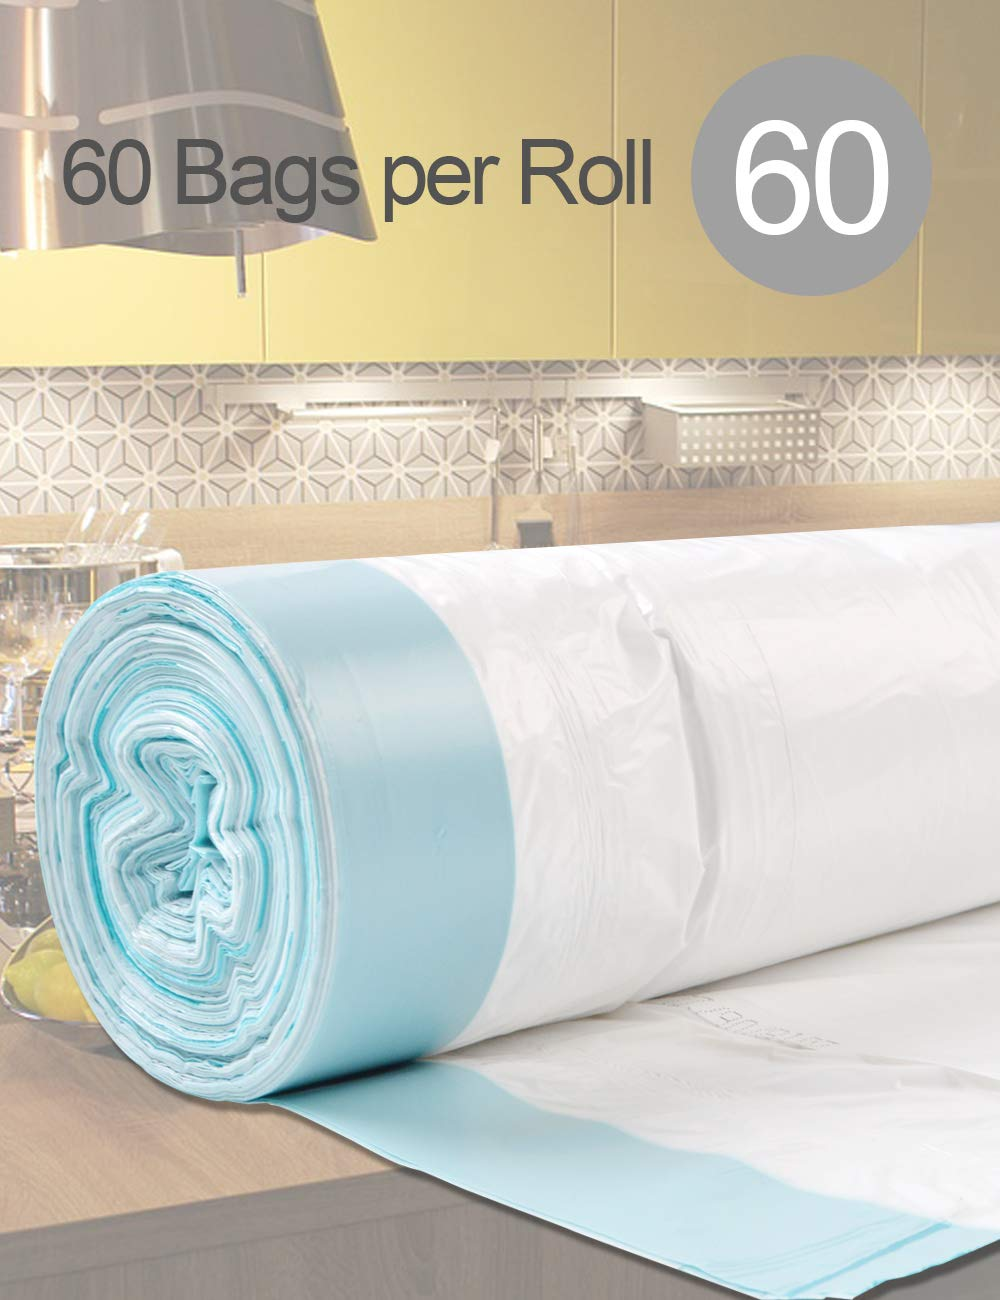 Eco-Friendly Recyclable 30.3L HOYT Garbage Bags Rubbish Bags with Portable Drawstring Trash Bags 60 Counts for Kitchen Livingroom Bedroom Bathroom Office 8GAL